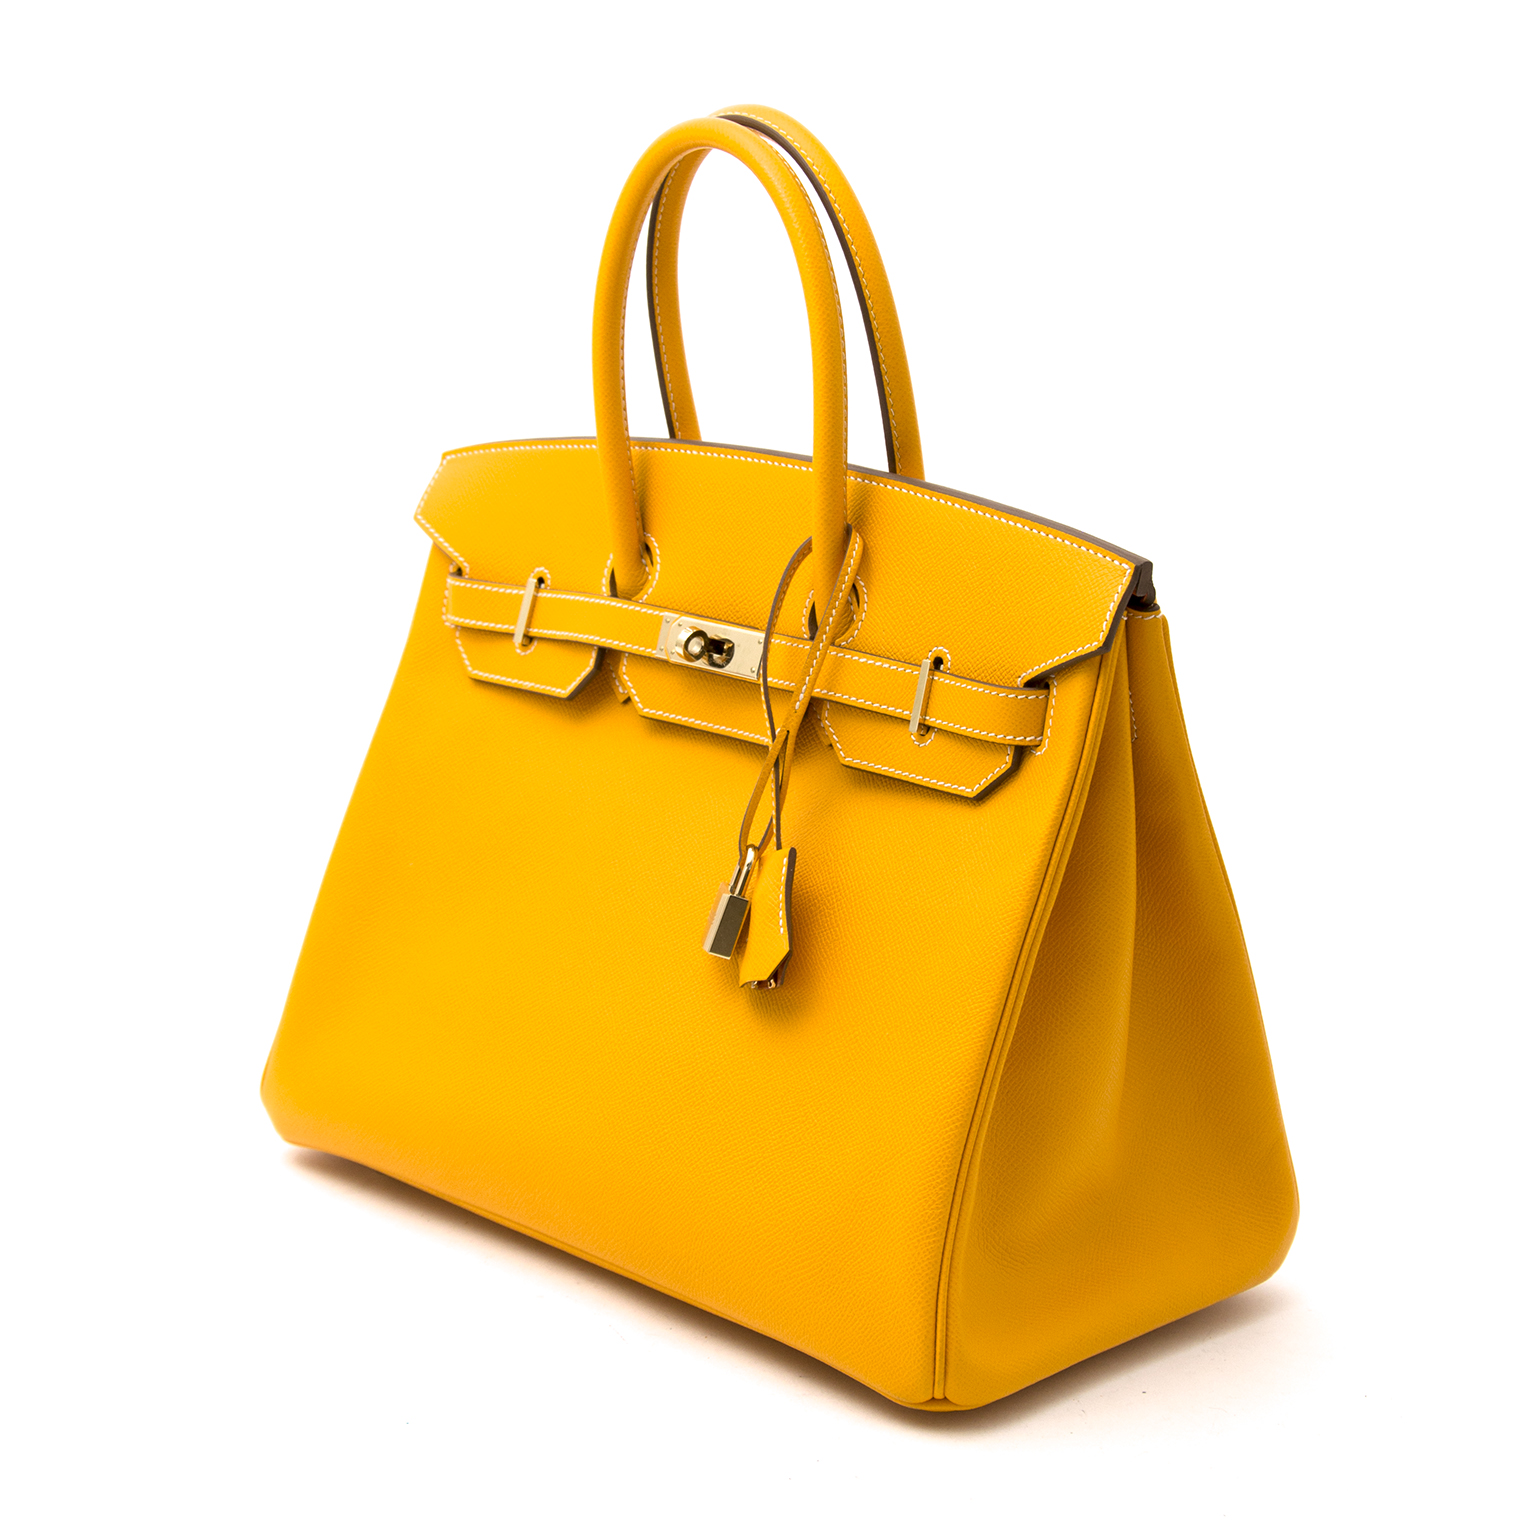 eff9ff68c3 ... Birkin 35cm CANDY collection jaune d or permabrass epsom · Hermes